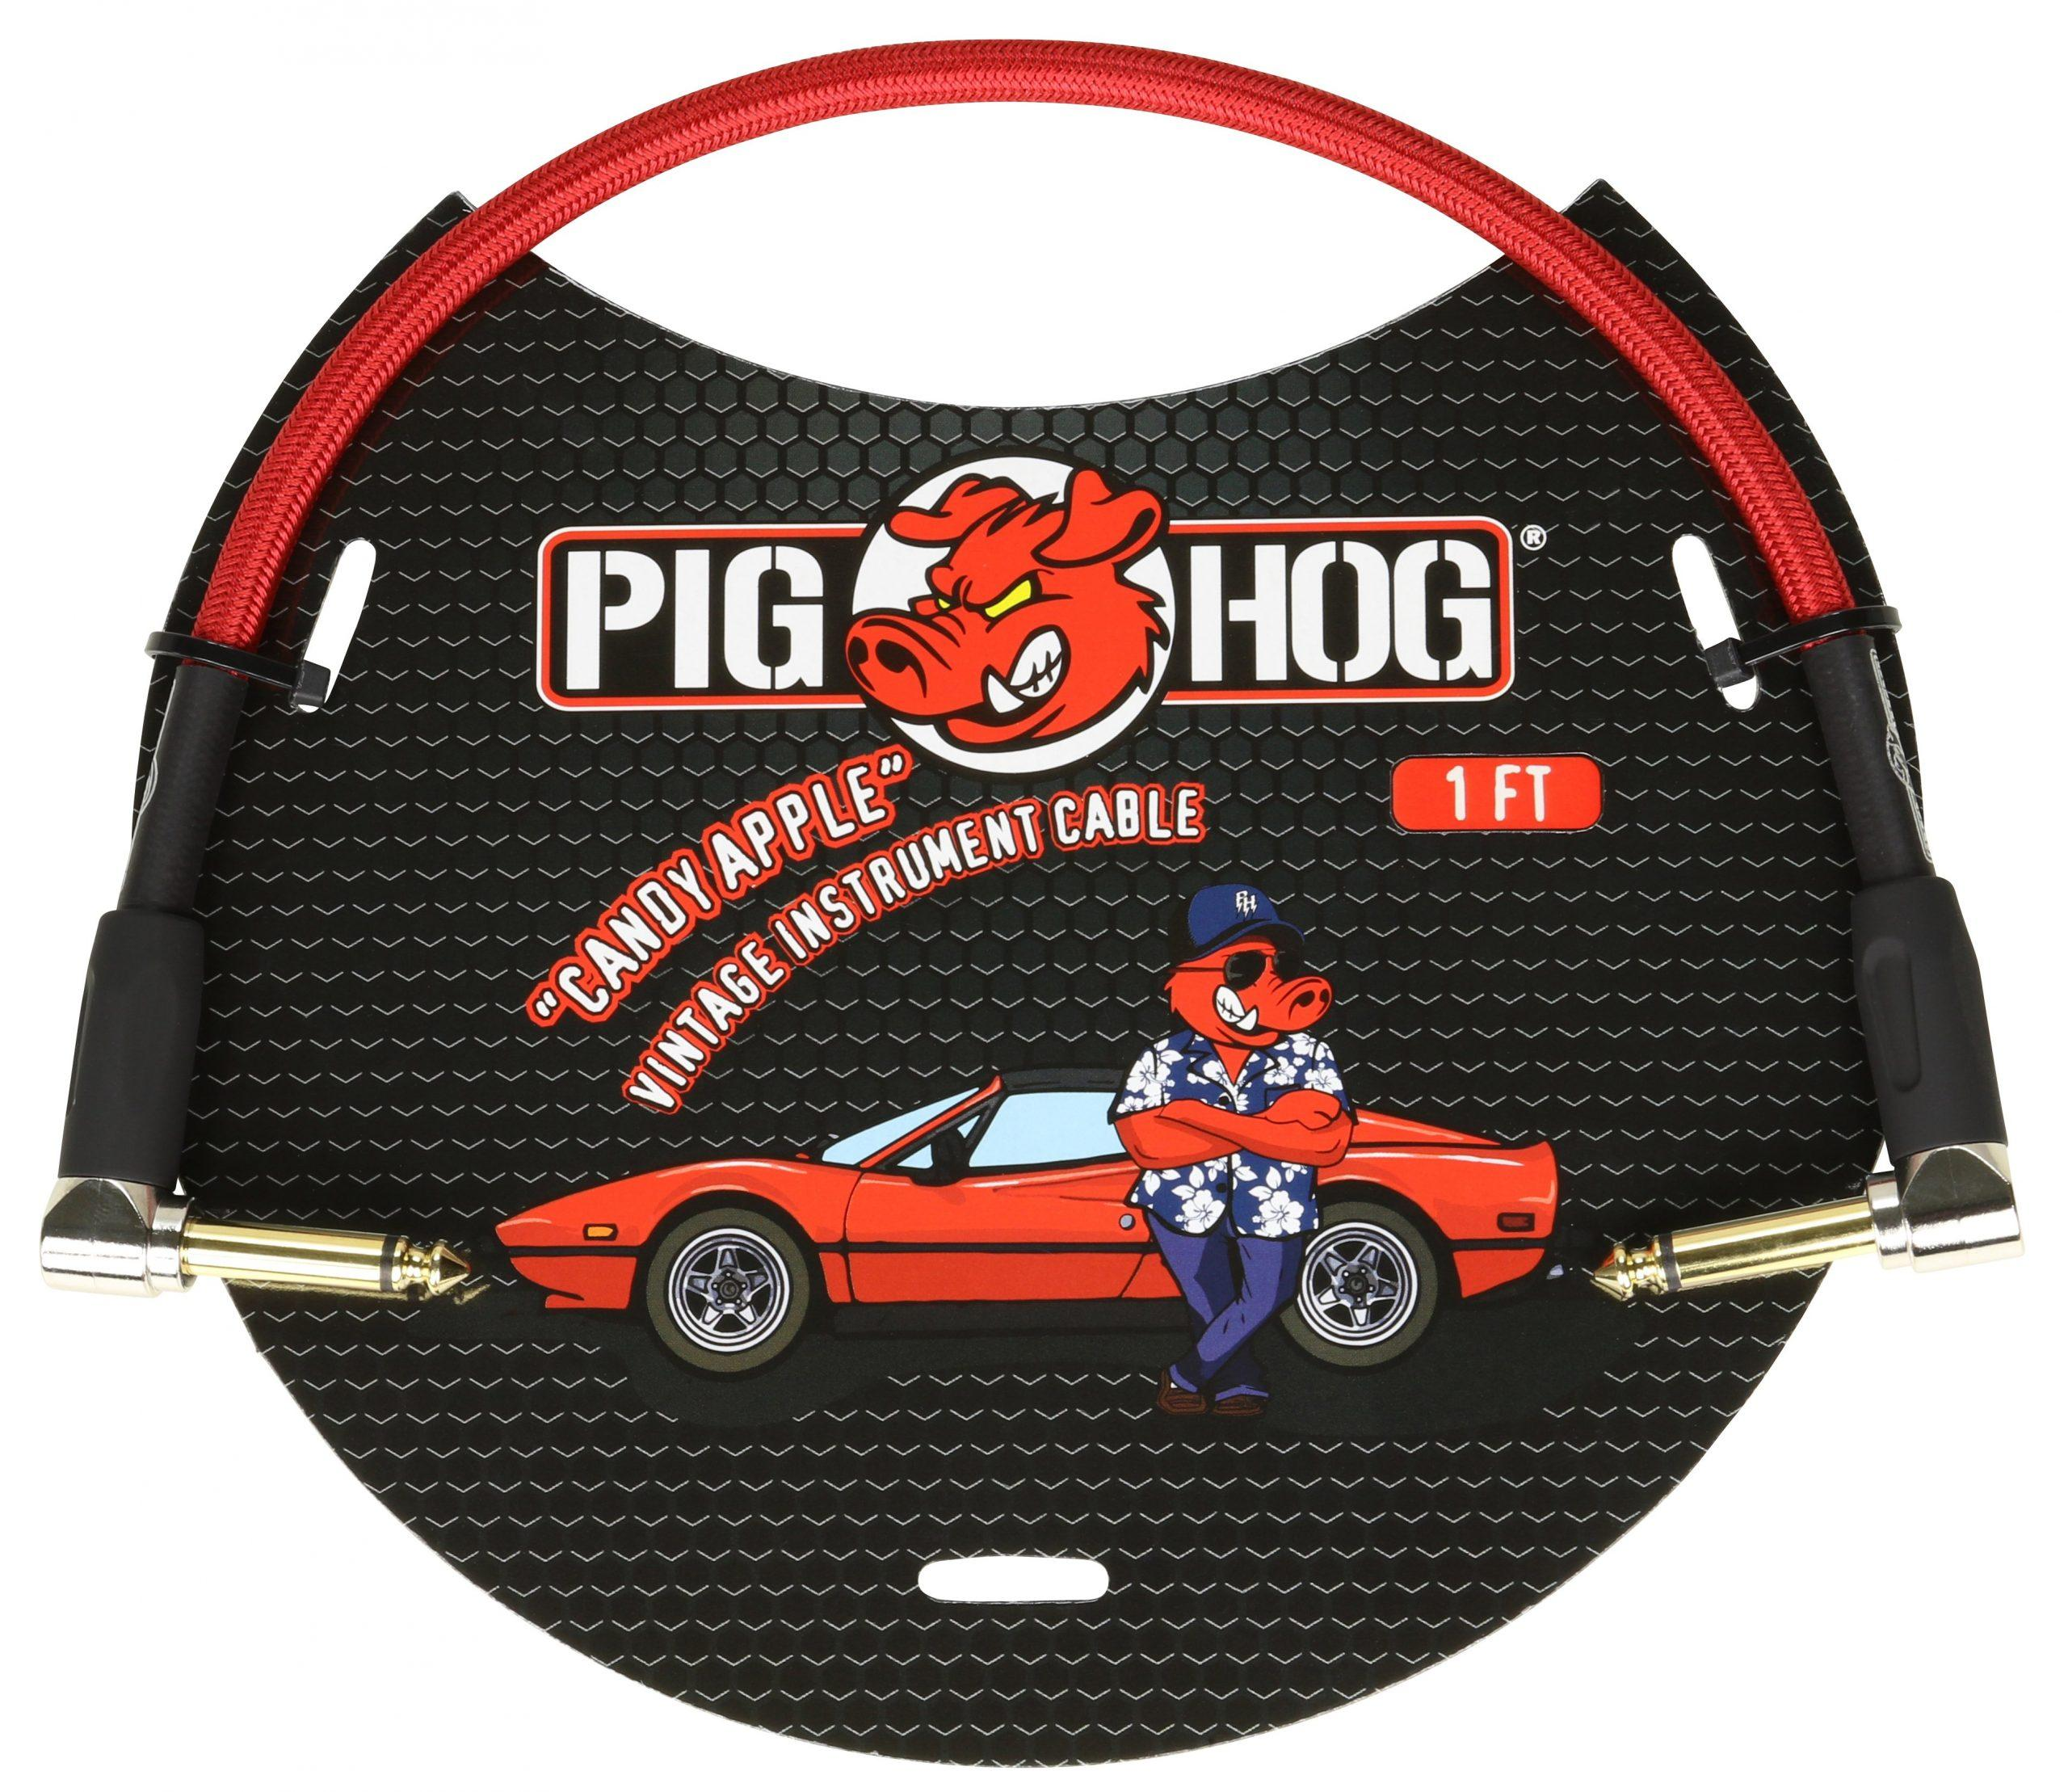 """Pig Hog """"Candy Apple Red"""" 1ft Right Angled Patch Cables"""